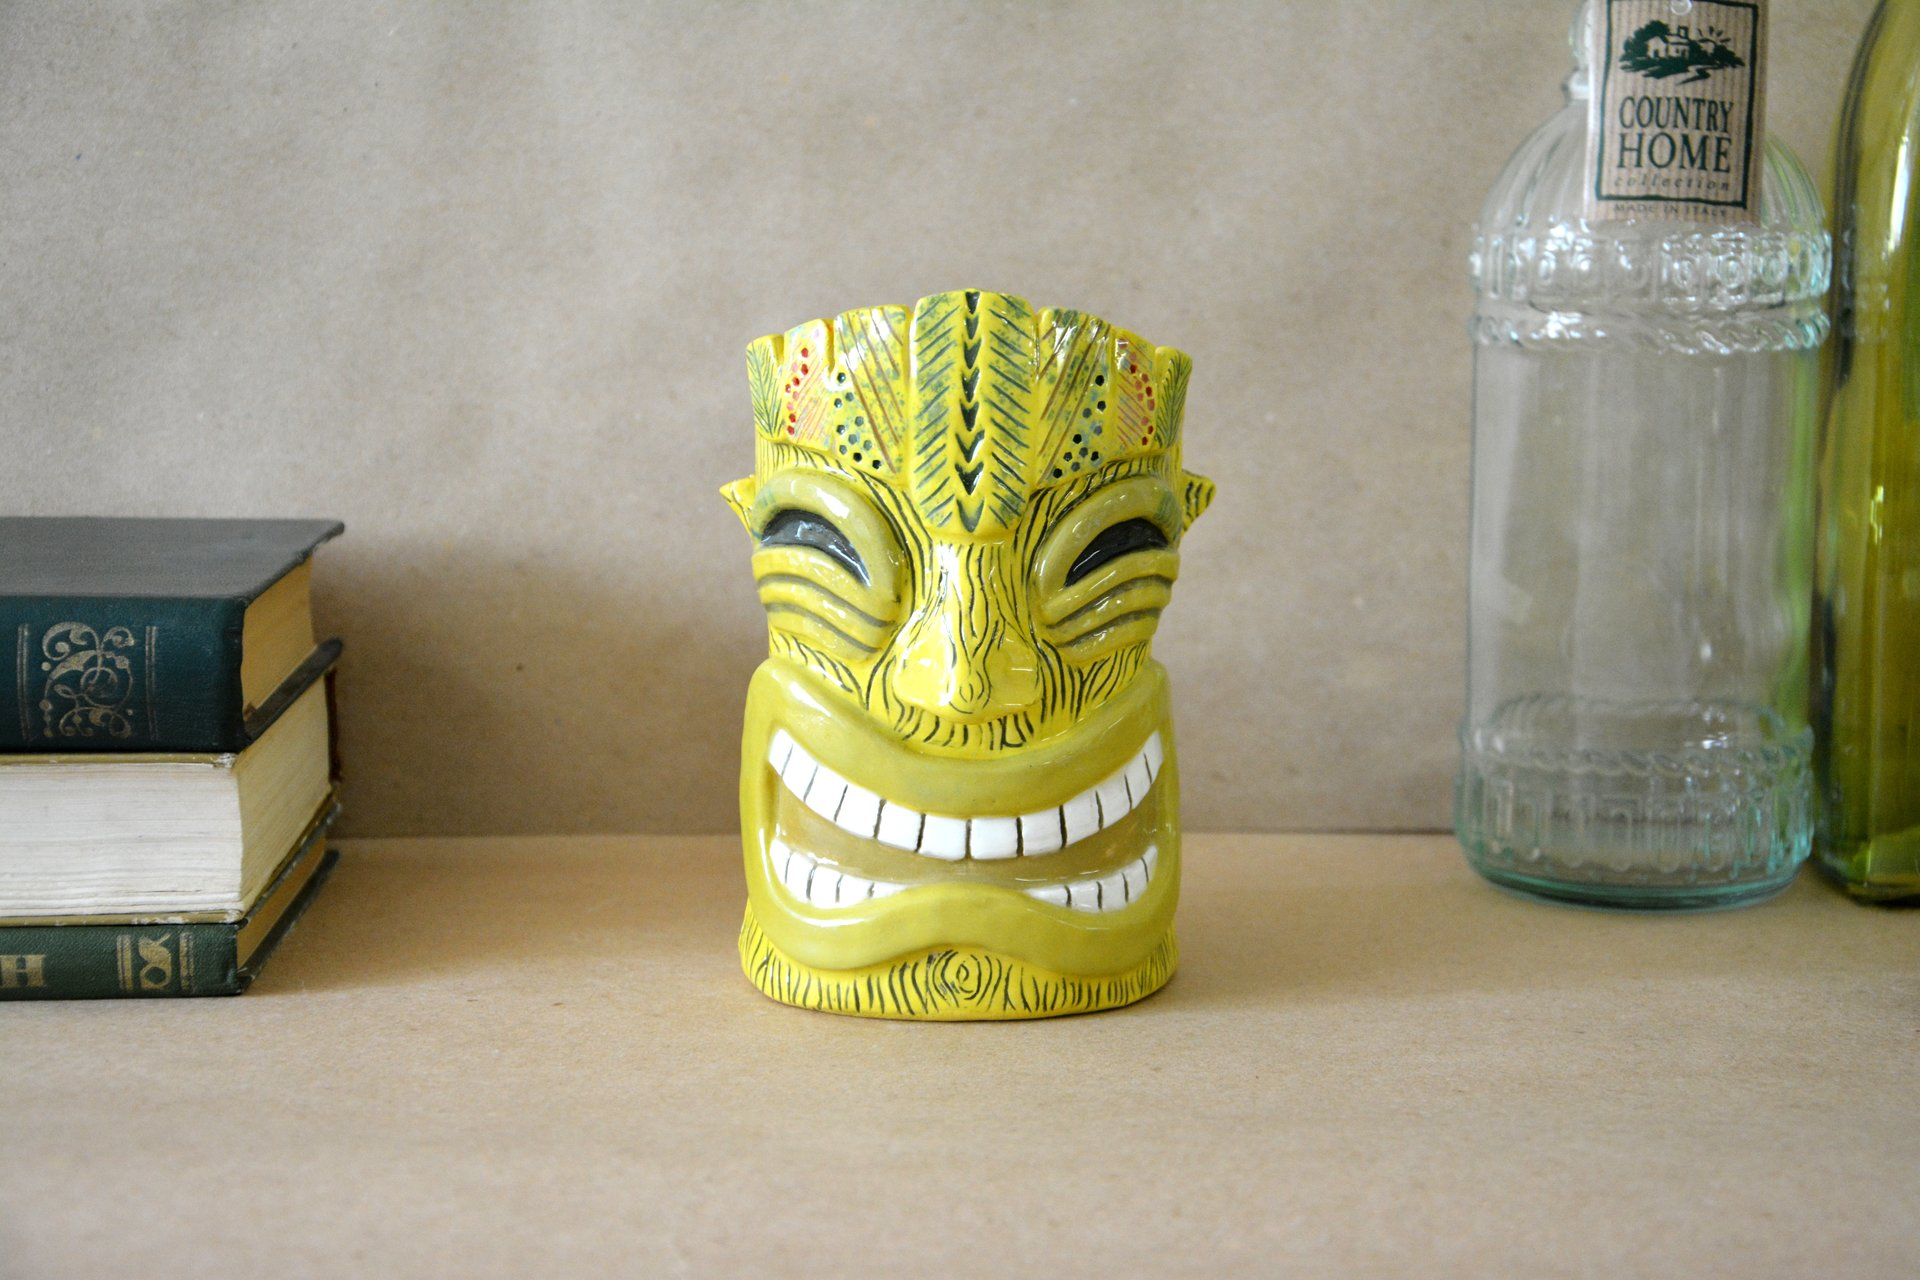 Glass of Tiki yellow big, height - 14 cm, volume - 0,6 l, photo 1 of 7.